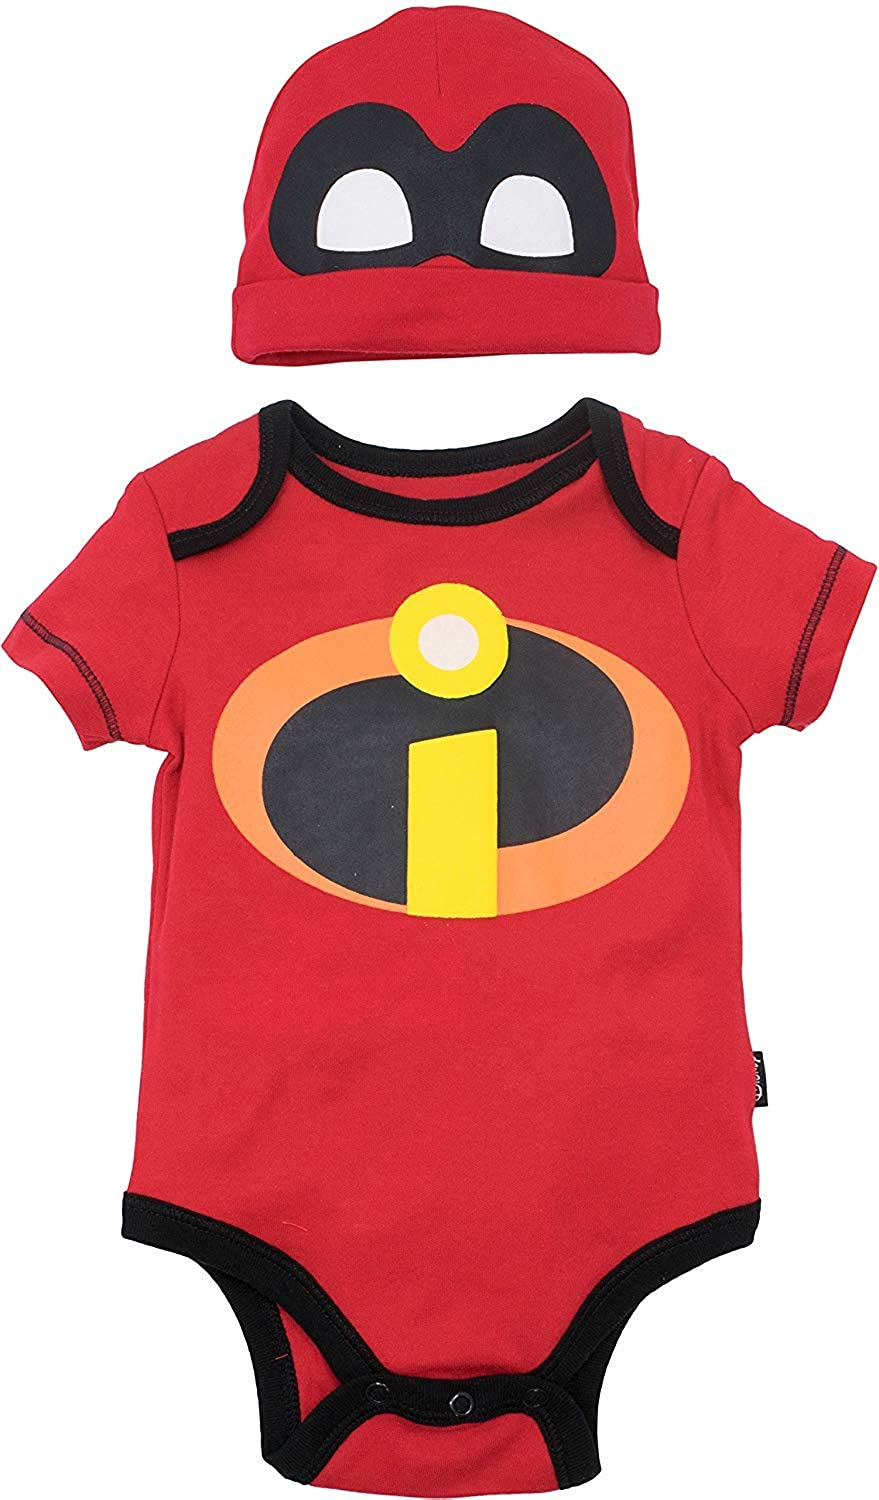 Disney Pixar The Incredibles Baby Boys' Costume Bodysuit and Hat Red